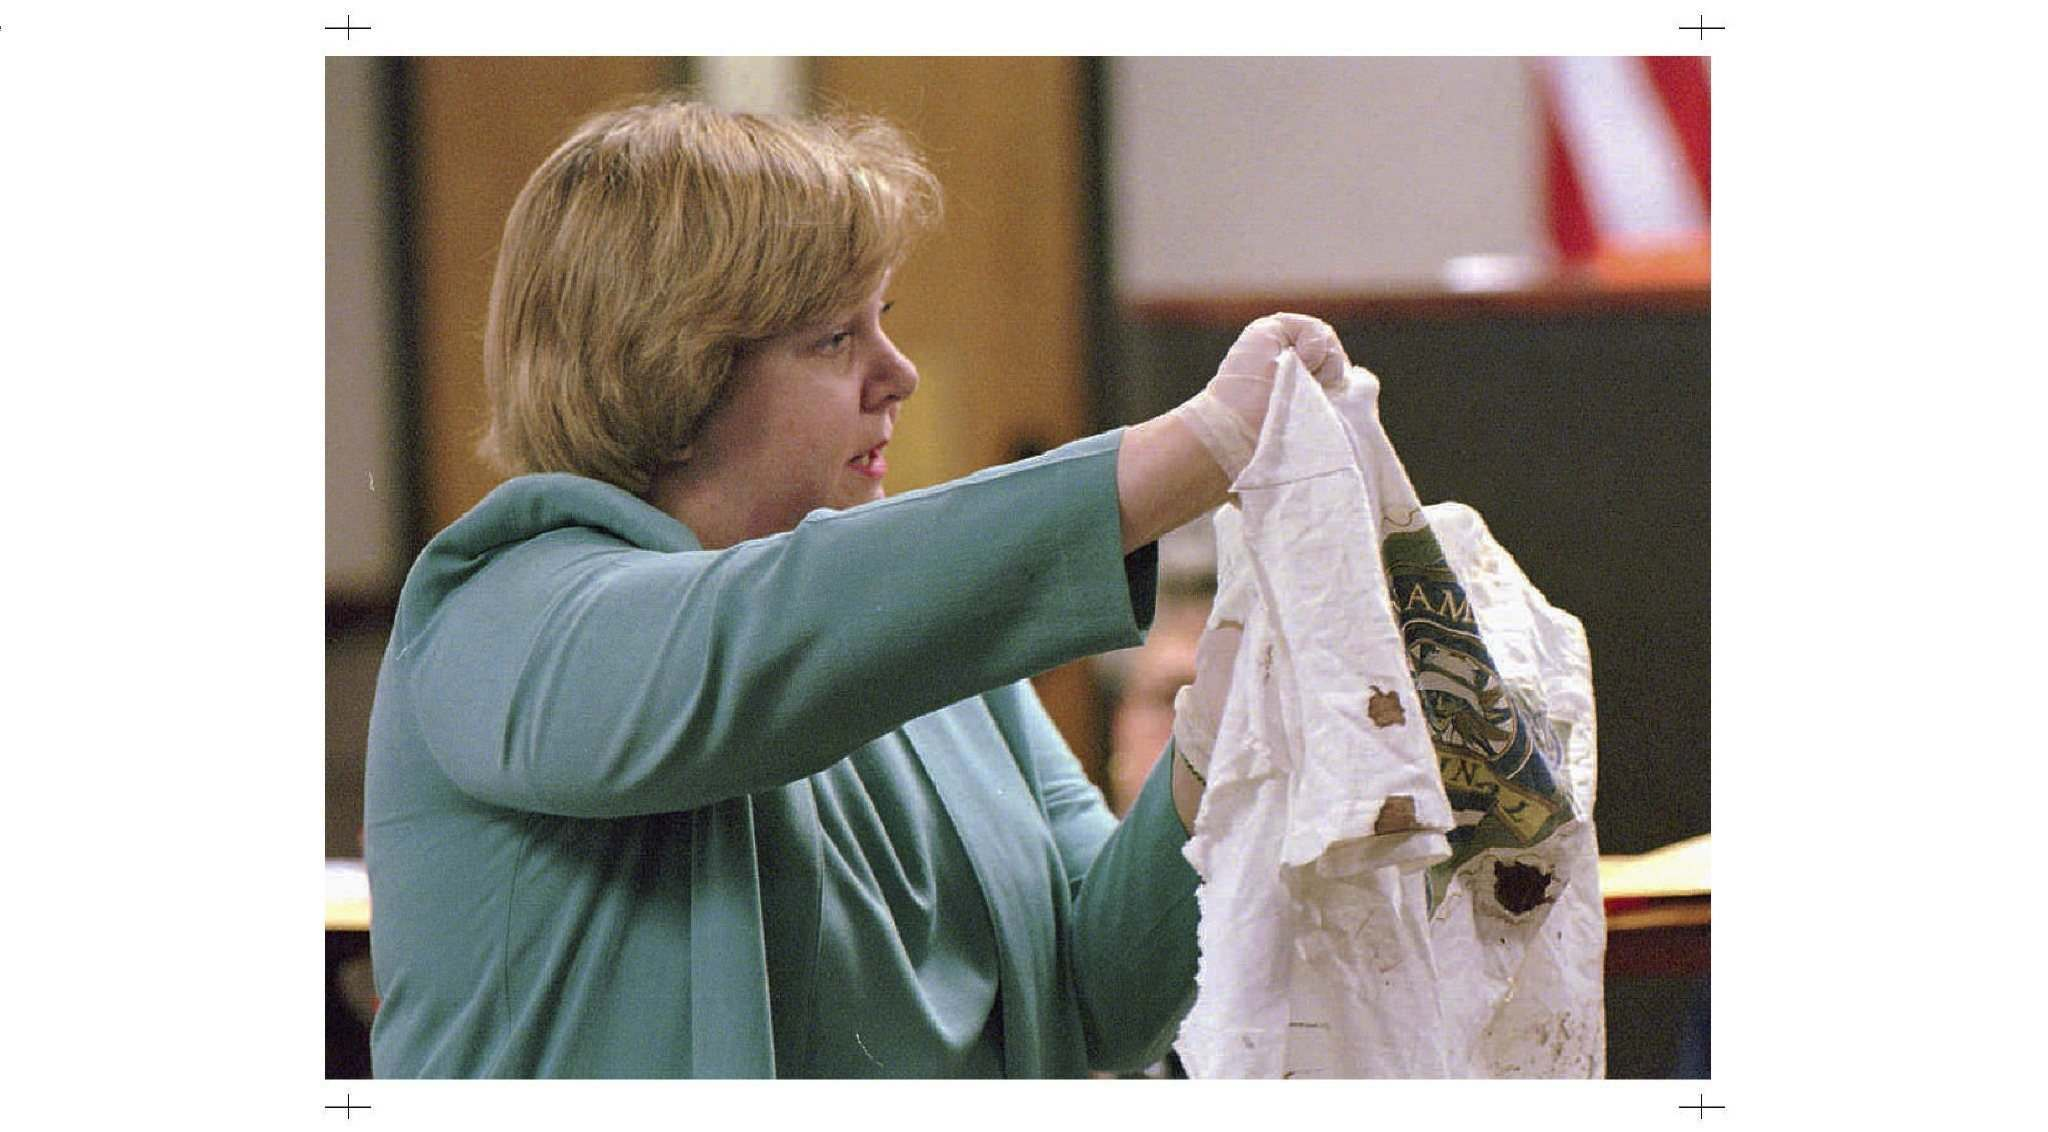 Suzanne Livingston, a DNA expert at the Florida Department of Law Enforcement Crime Lab, displays a blood-spotted T-shirt during Ralph Crompton's murder trial. (Vern Miller / Panama City News Herald files)